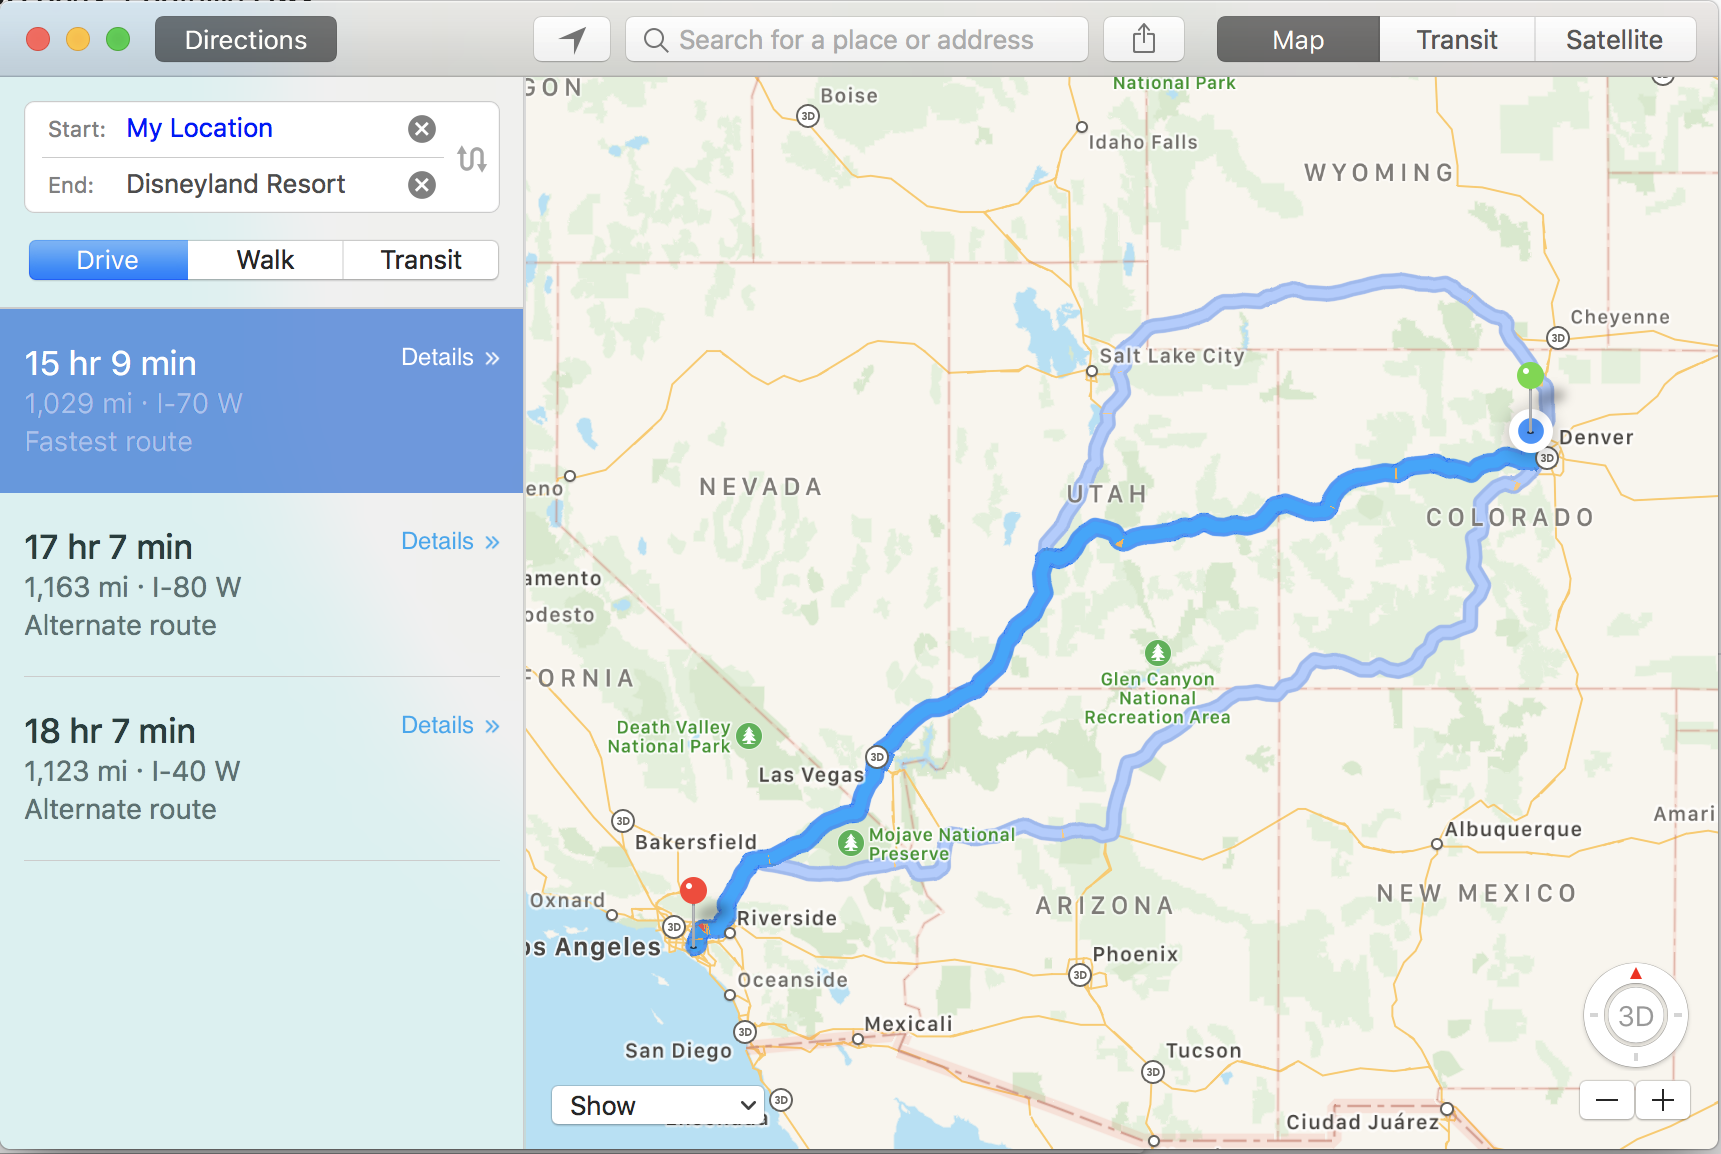 directions to disneyland from denver, colorado - apple maps